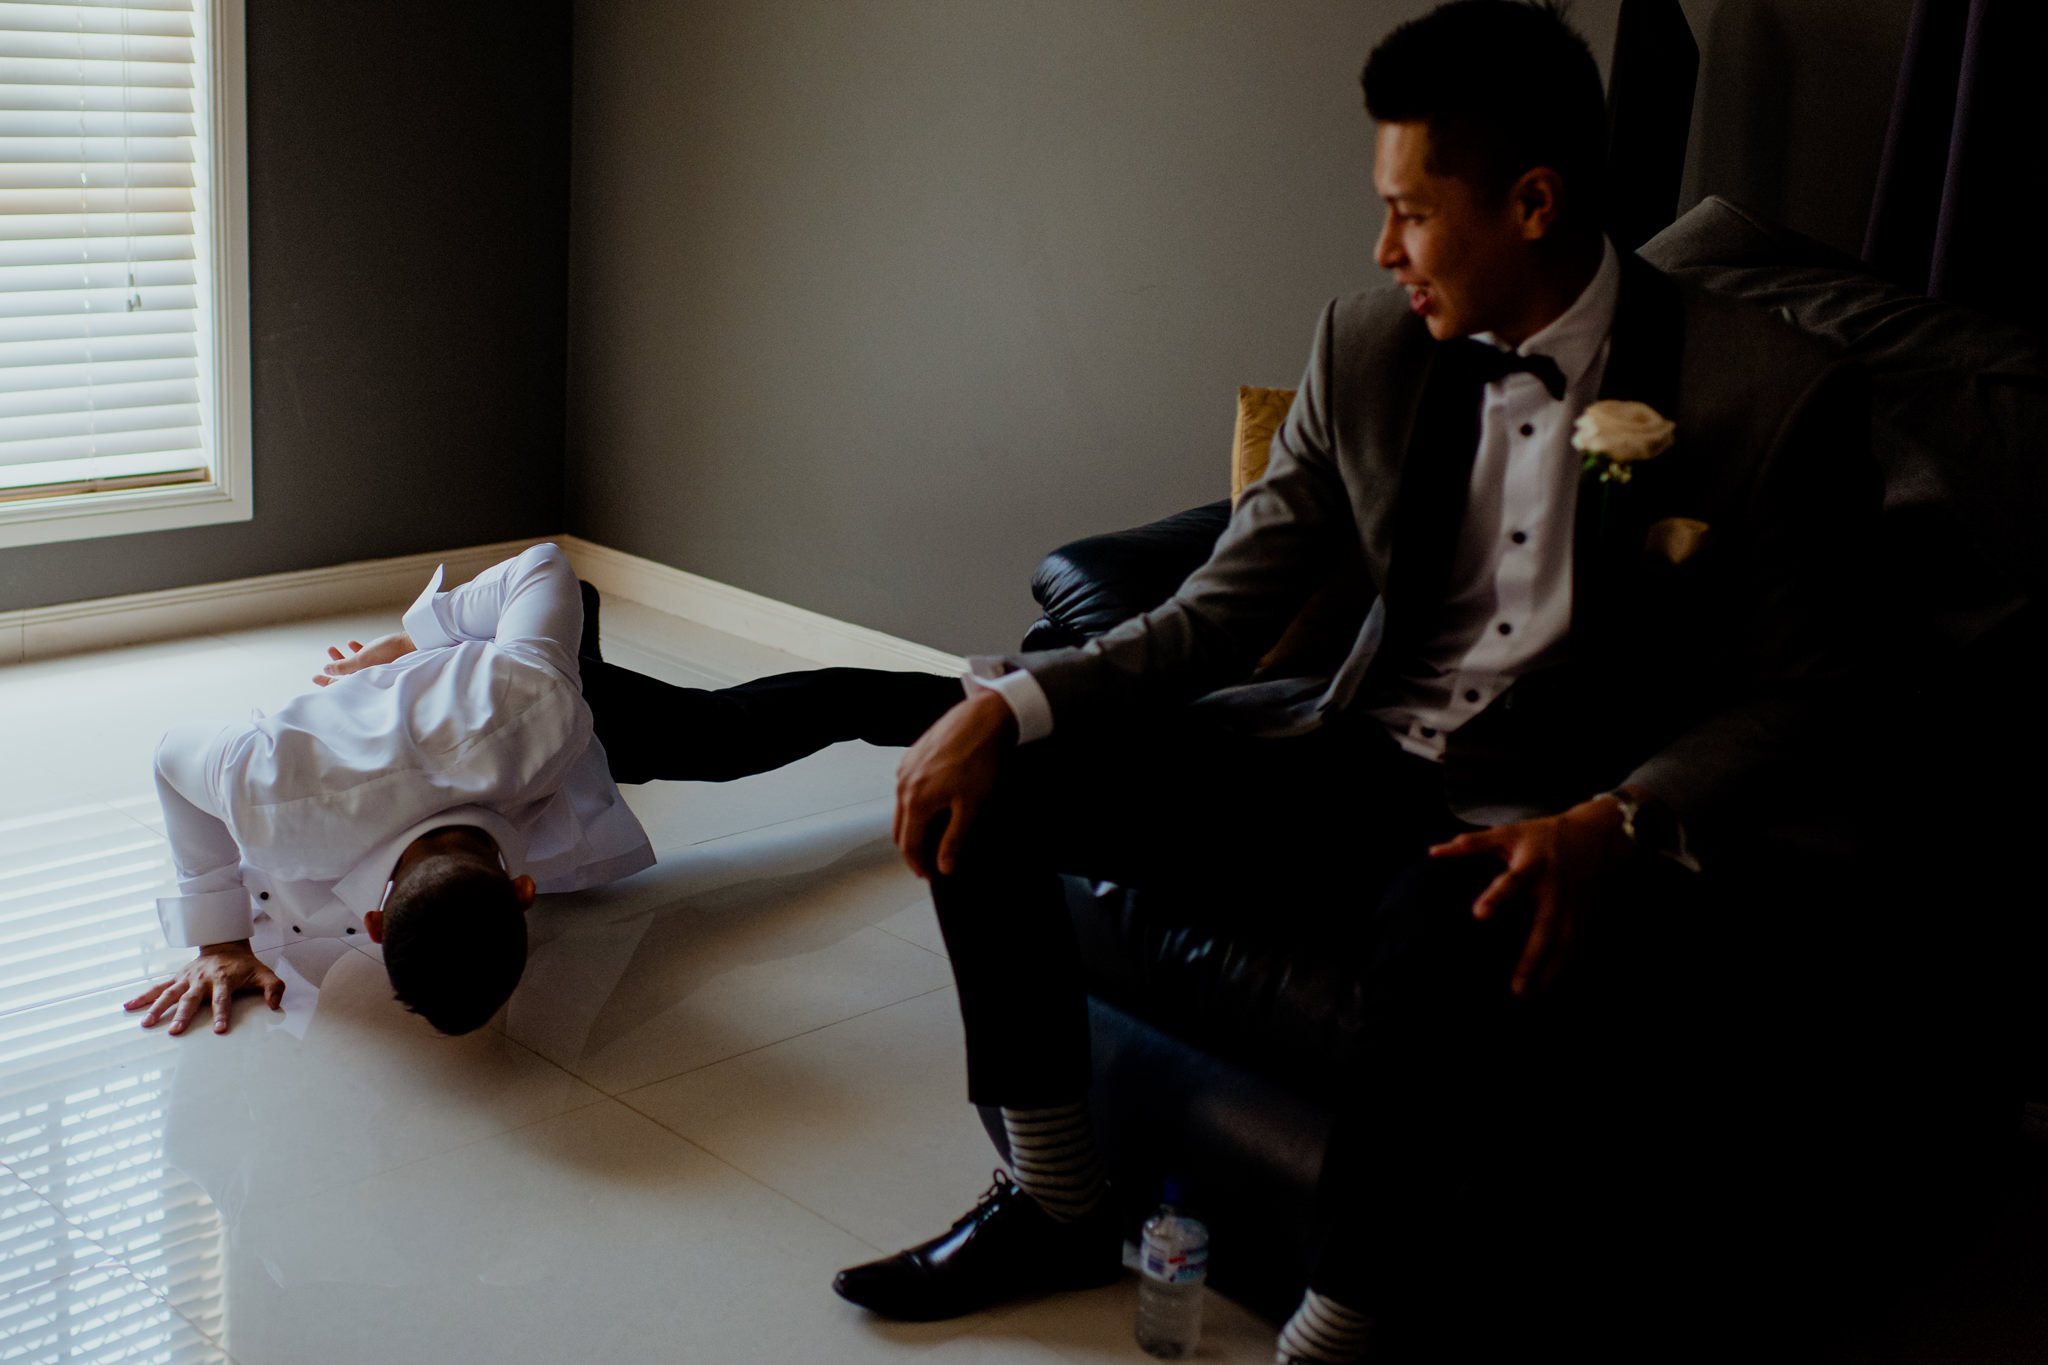 A man wearing a formal shirt does one handed pushups next to a man wearing a suit sitting on a chair